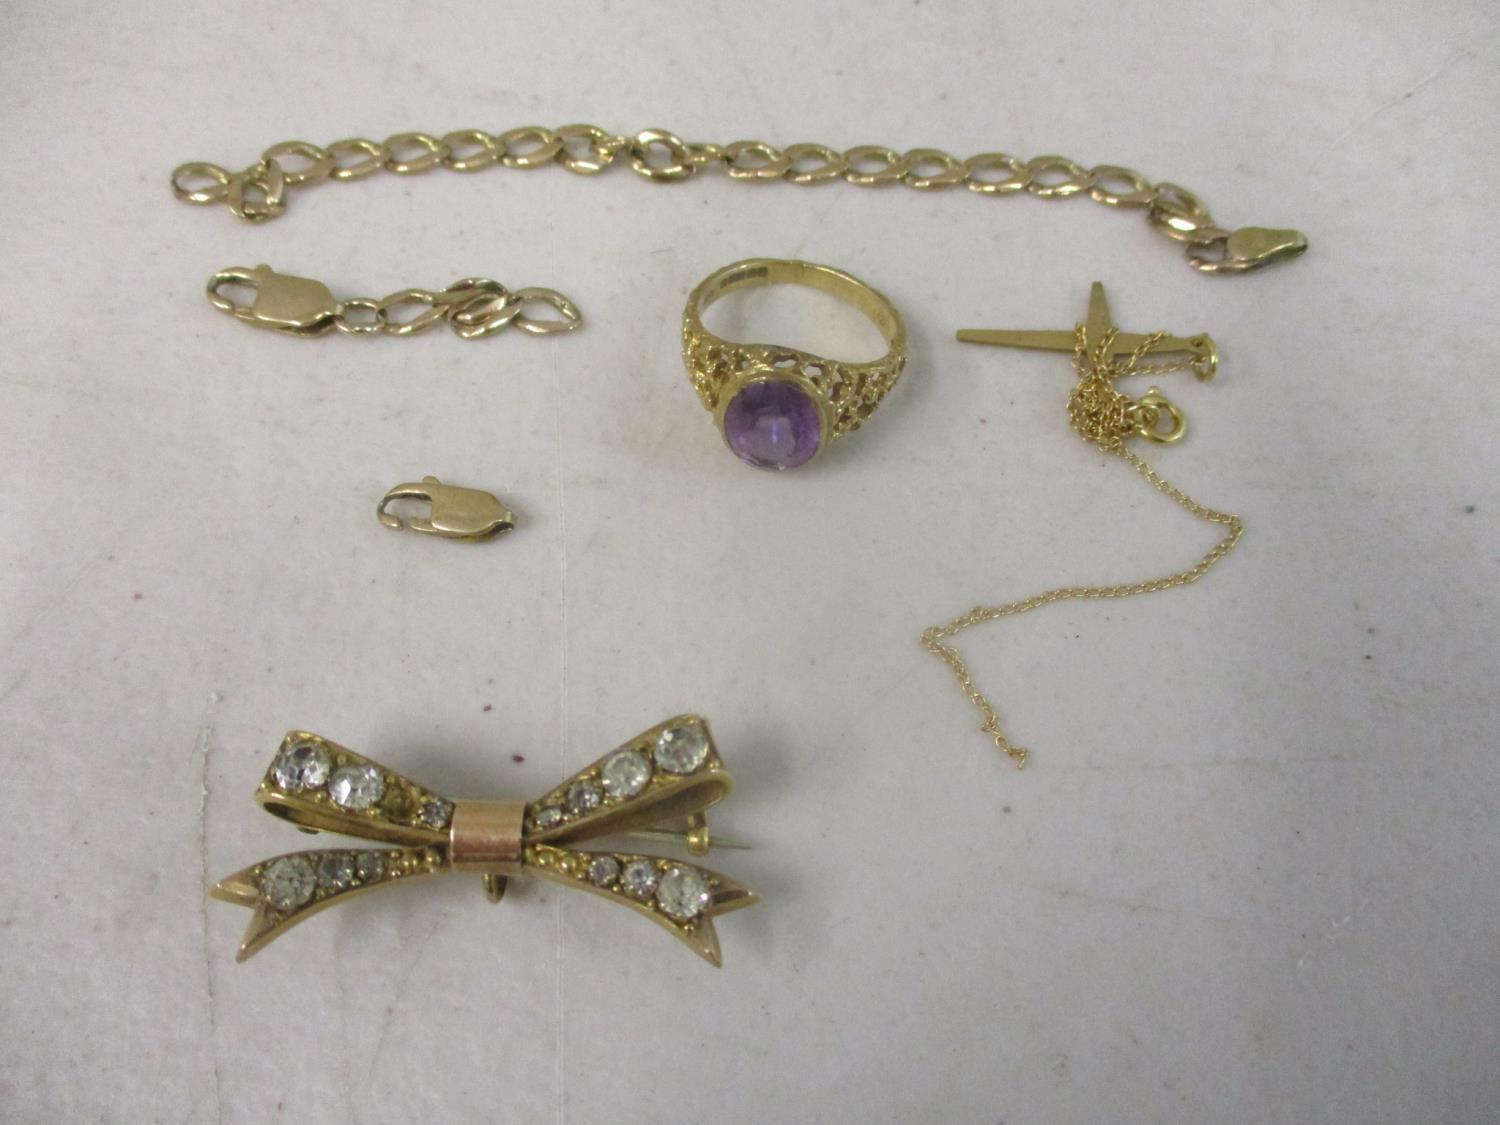 Lot 134 - 9ct Gold, yellow metal jewellery stamped 18ct and silver and other gold jewellery stamped 375, to